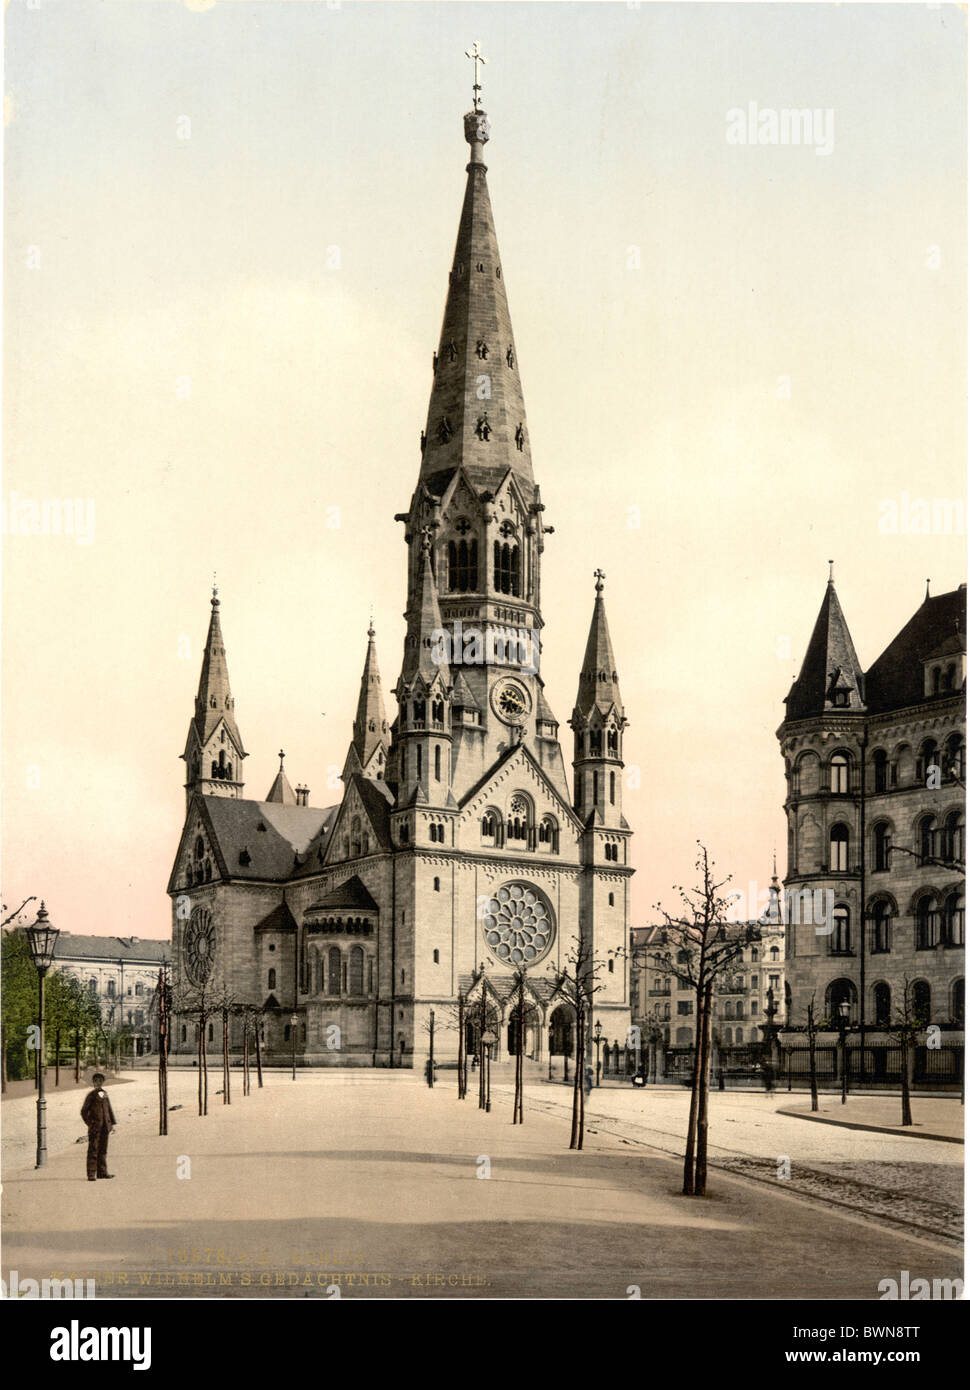 Emperor Wilhelm Memorial Church Germany Europe Photochrom about 1900 German Empire history historical historic - Stock Image